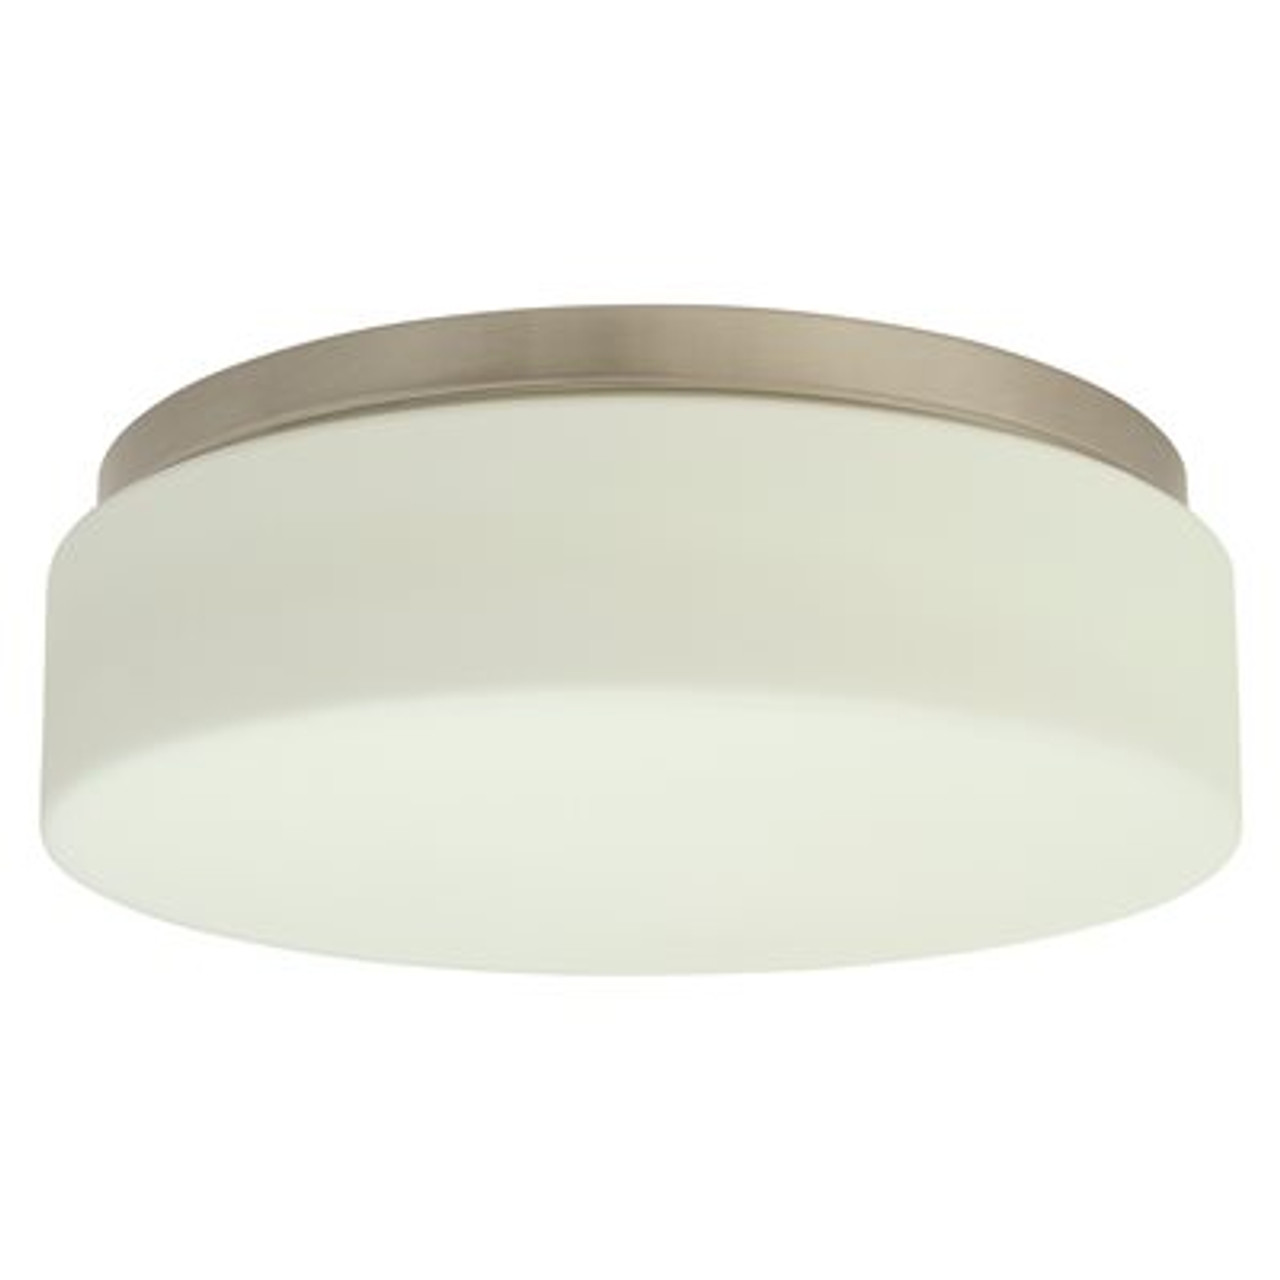 MONUMENT 2479576 2-LIGHT BRUSHED NICKEL FLUSH MOUNT | BROWN PALLET